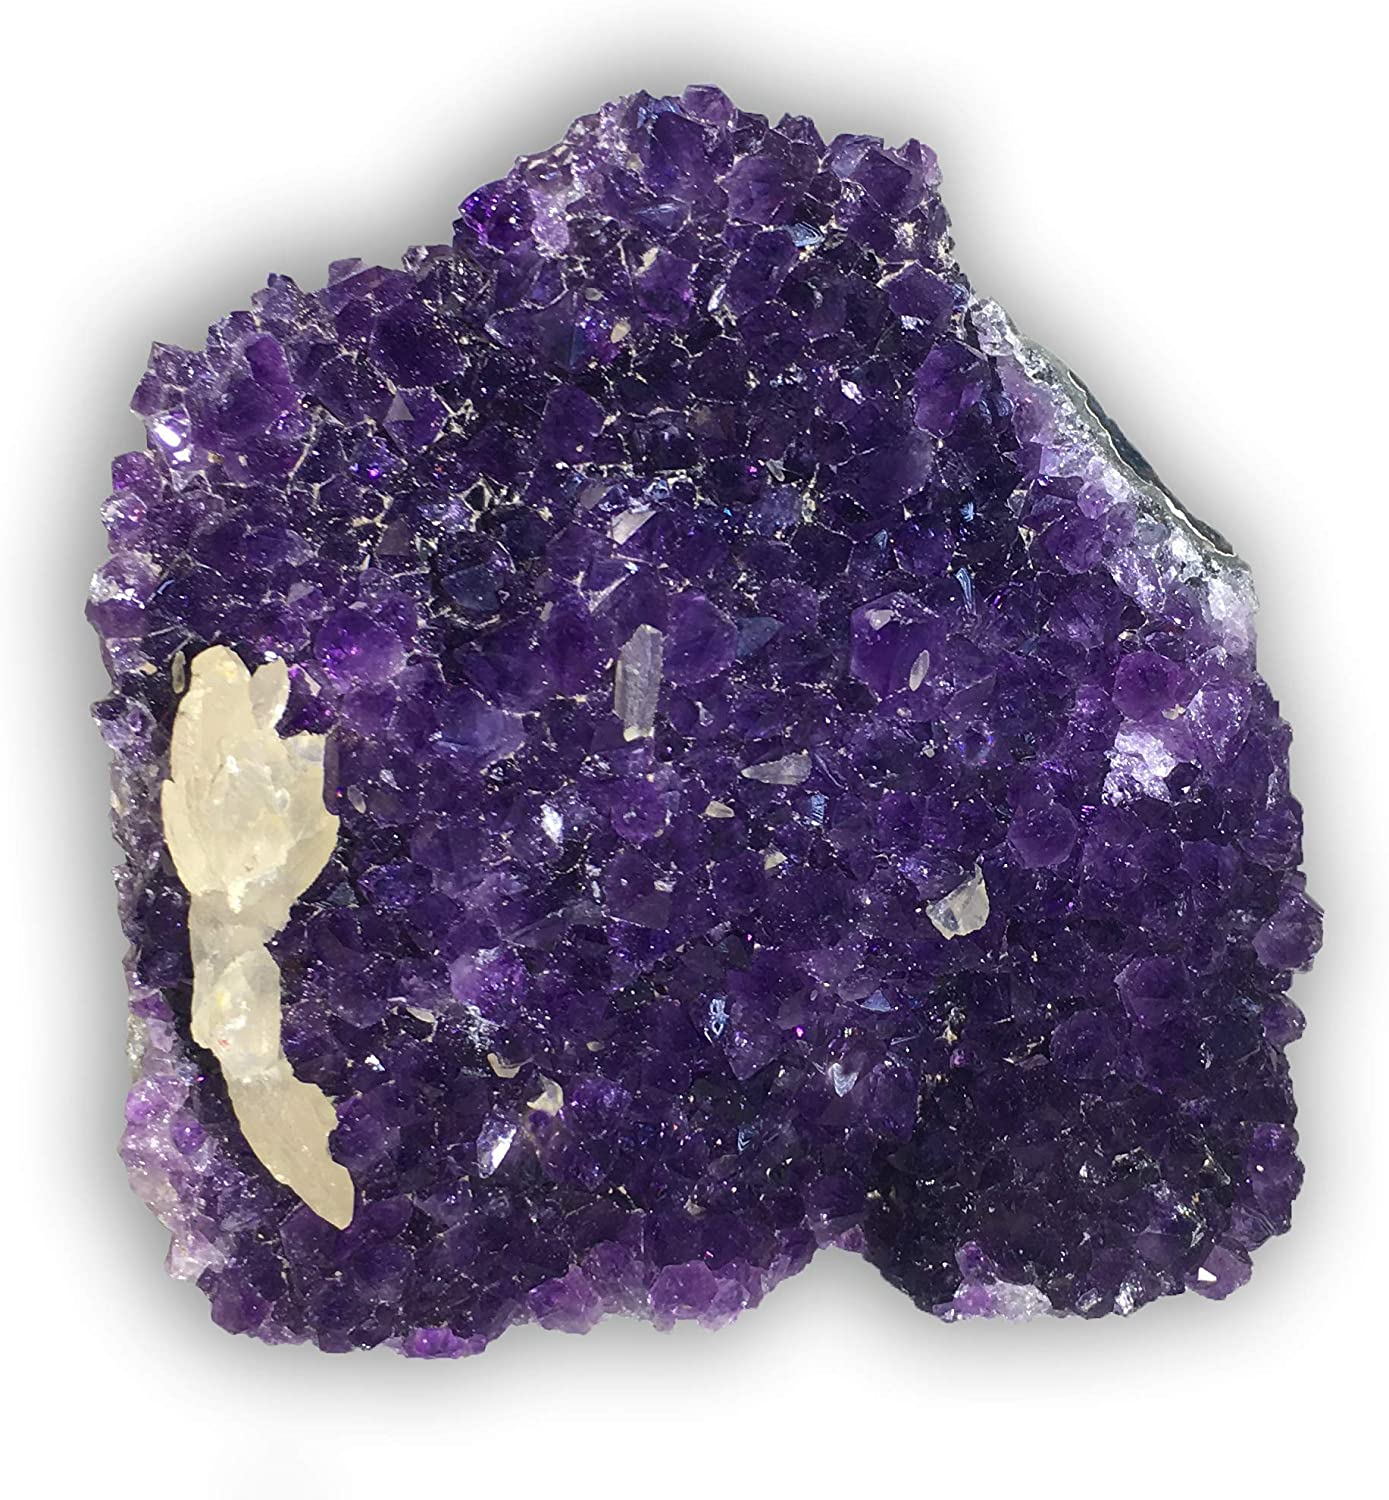 Geologists /& Amethyst Collectors. Highly Collectible for Rock Hounds up to 1 lb Amazing Amethyst Cluster deep Purple Clusters with INCLUSIONS of Quartz or Calcite